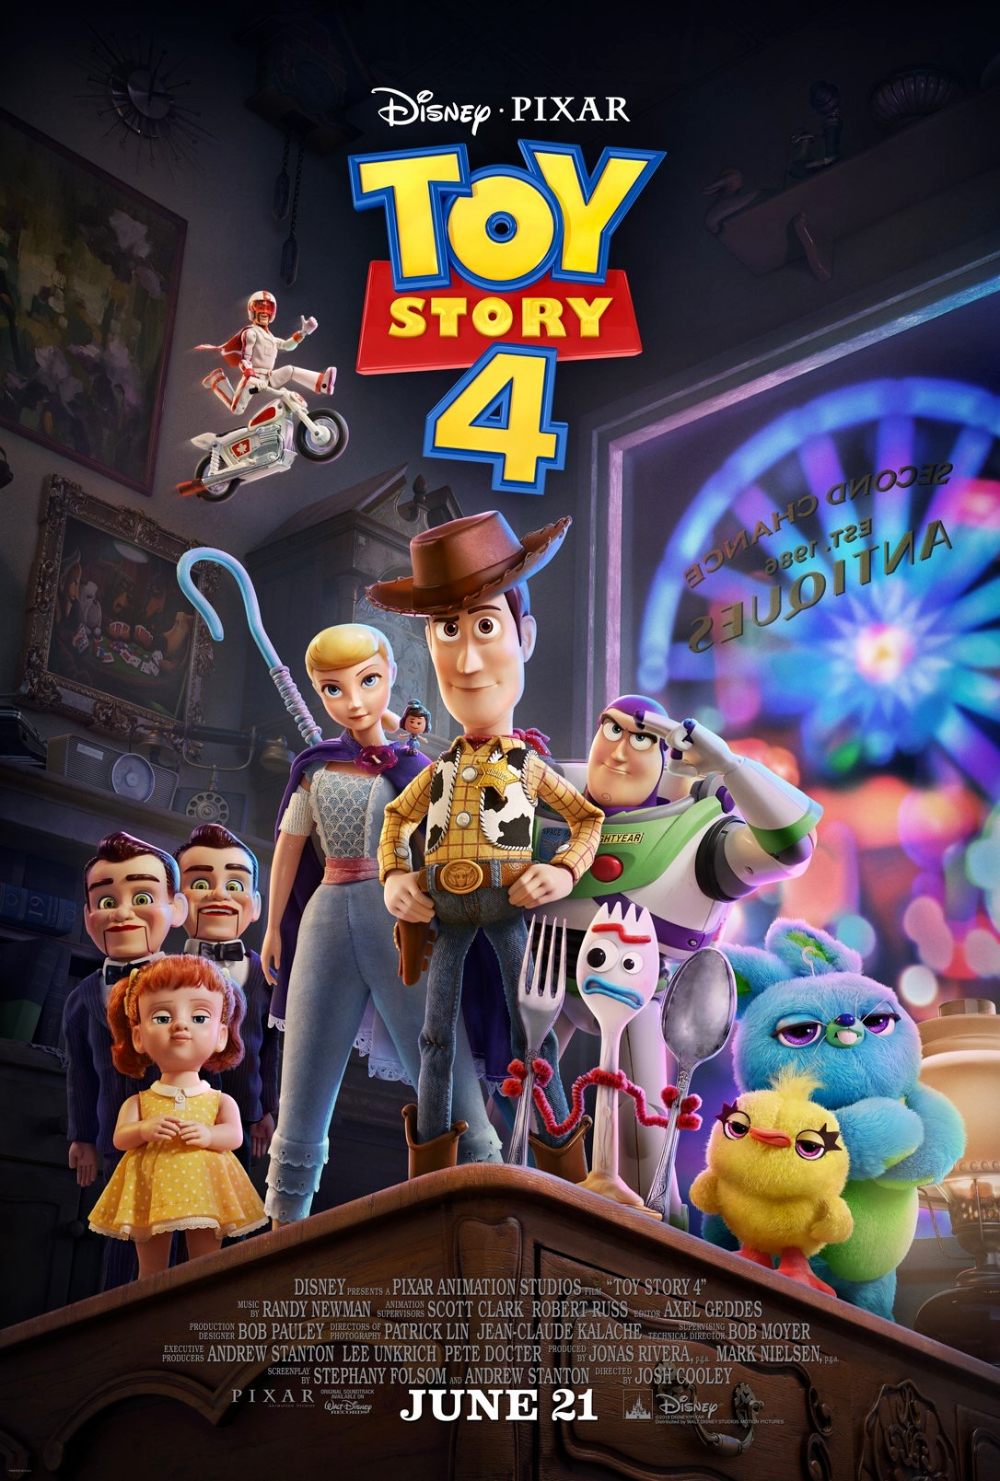 Toy Story 4 in 2020 Free movies online, Toy story movie